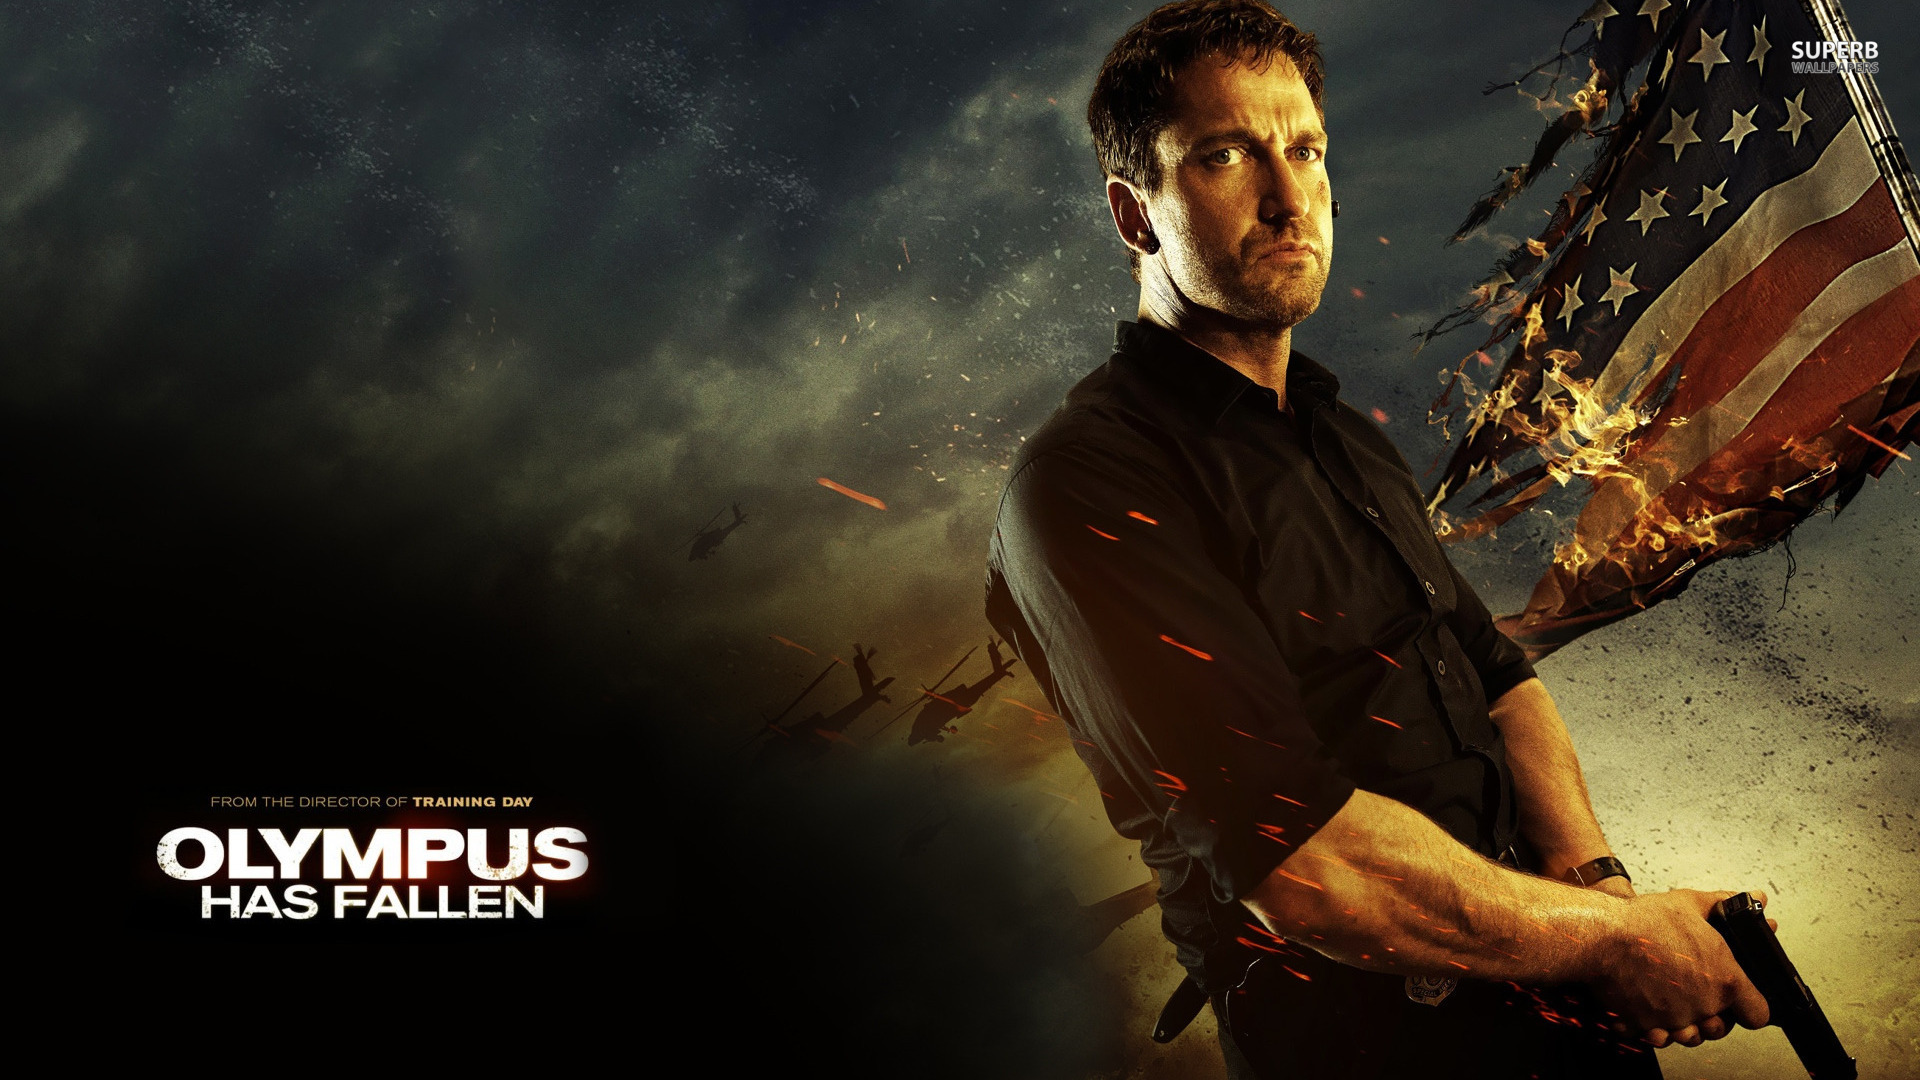 Olympus Has Fallen Movie Wallpaper HD 1920x1080 pixel Popular HD 1920x1080